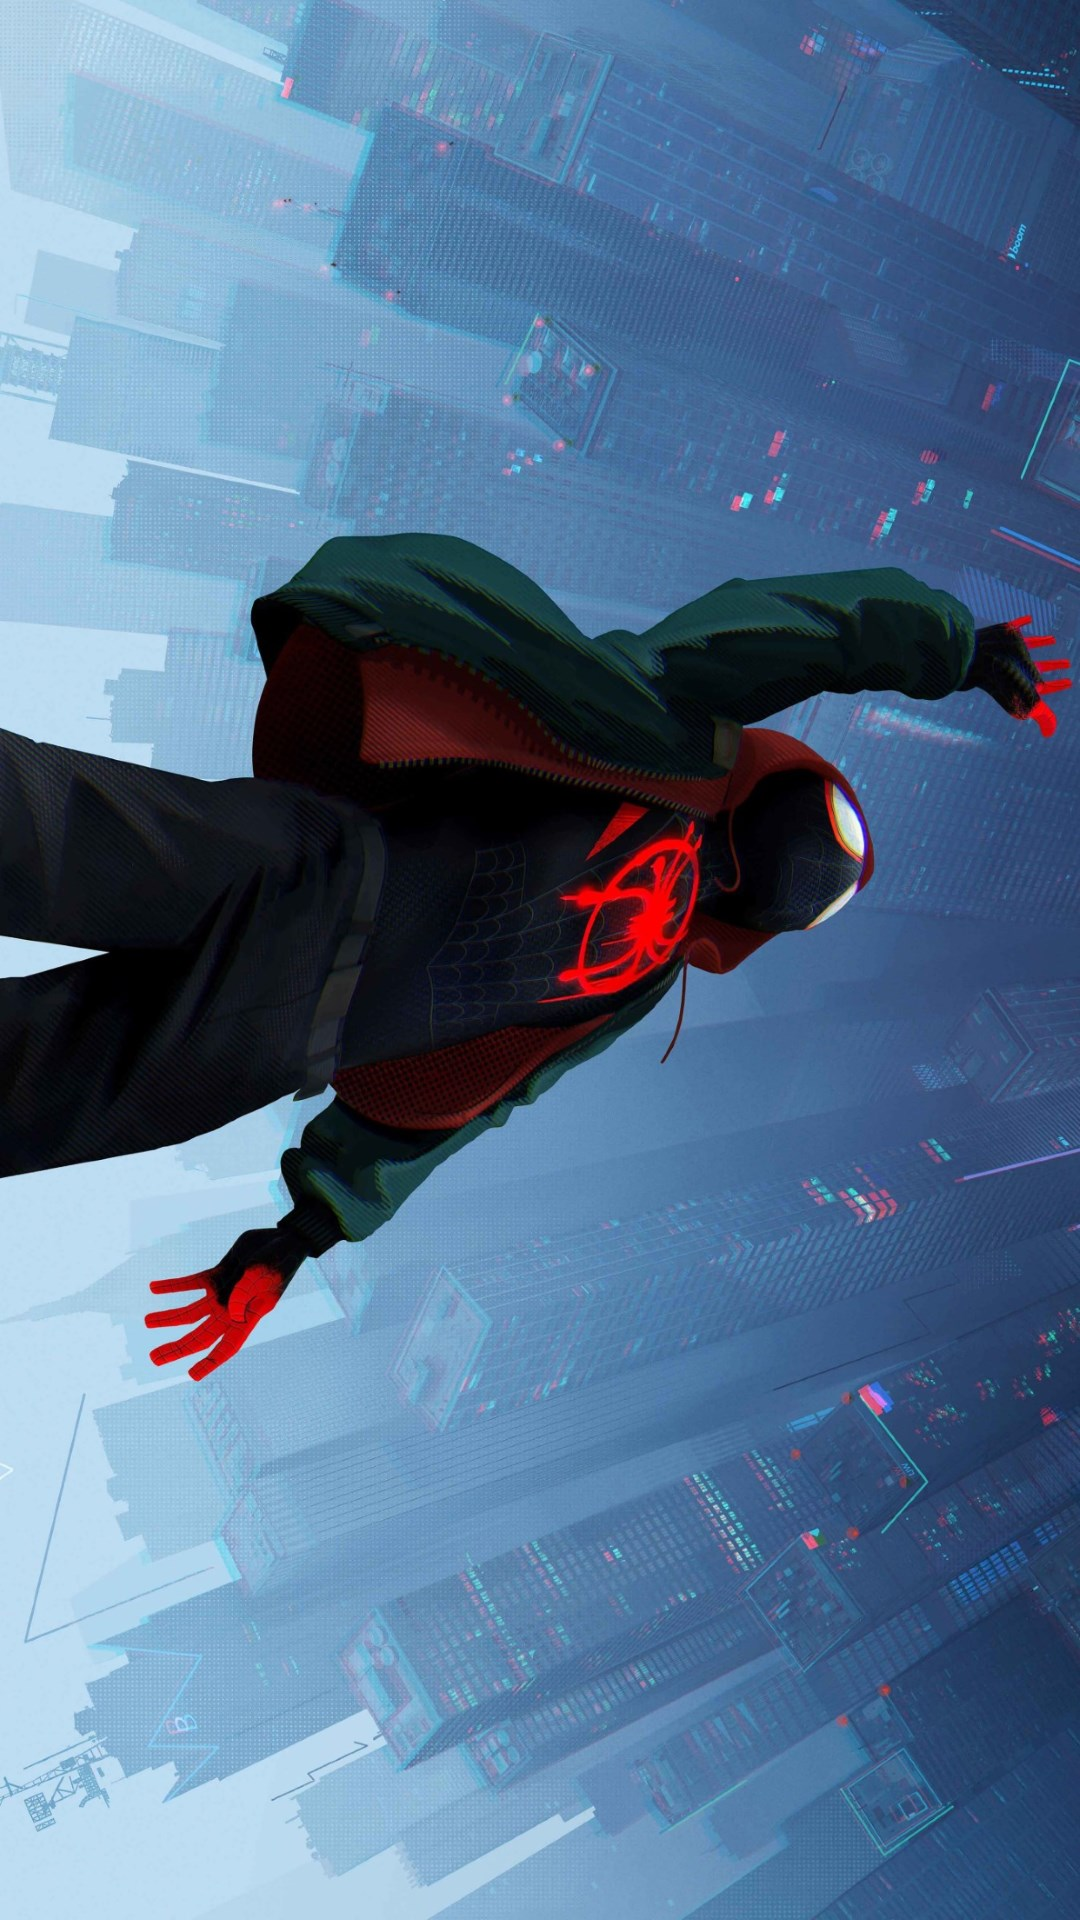 Download Wallpaper Spider Man Into The Spider Verse 2018 1080x1920